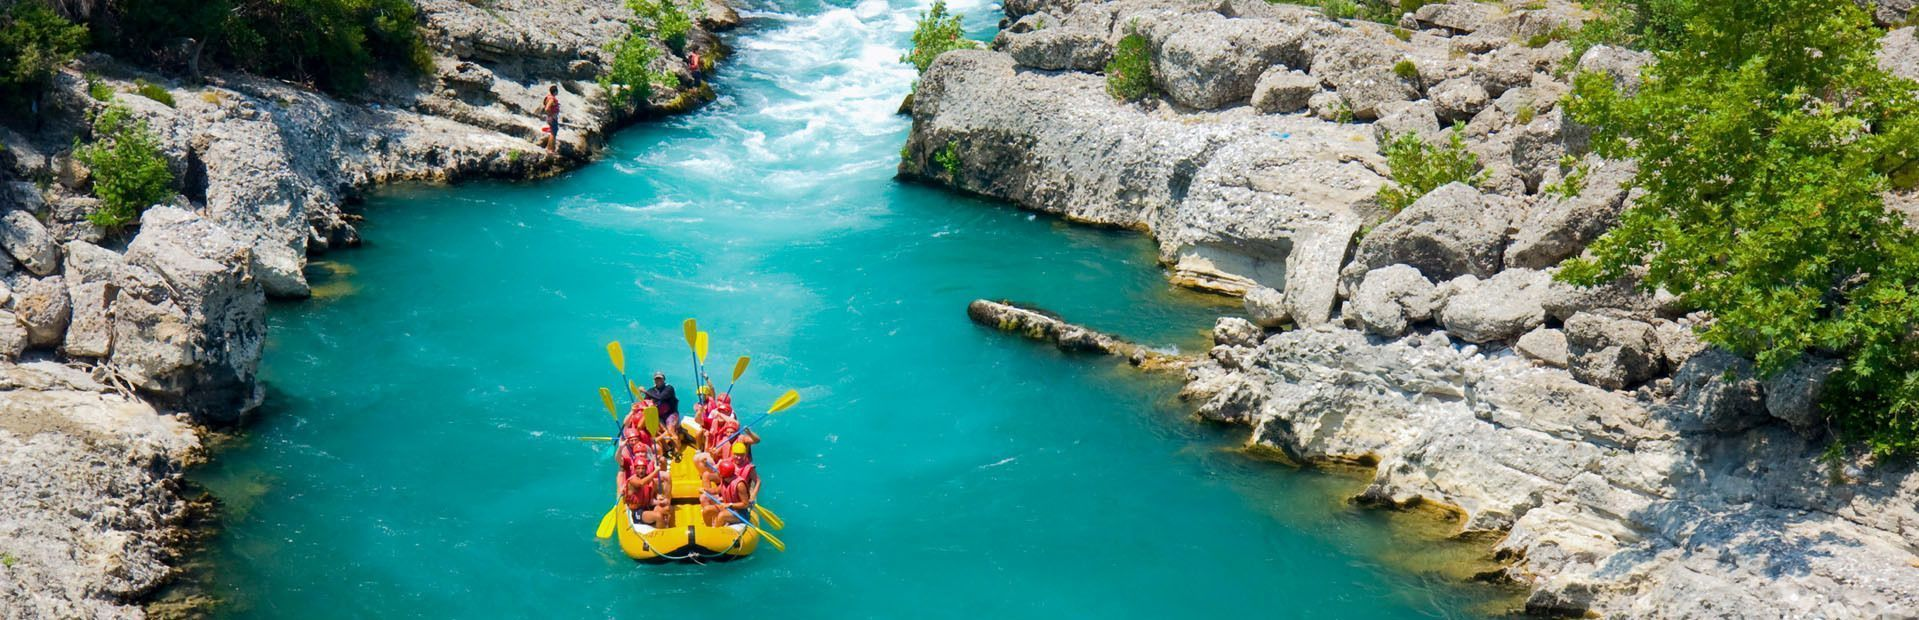 Trentino Active: Rafting in Val di Sole